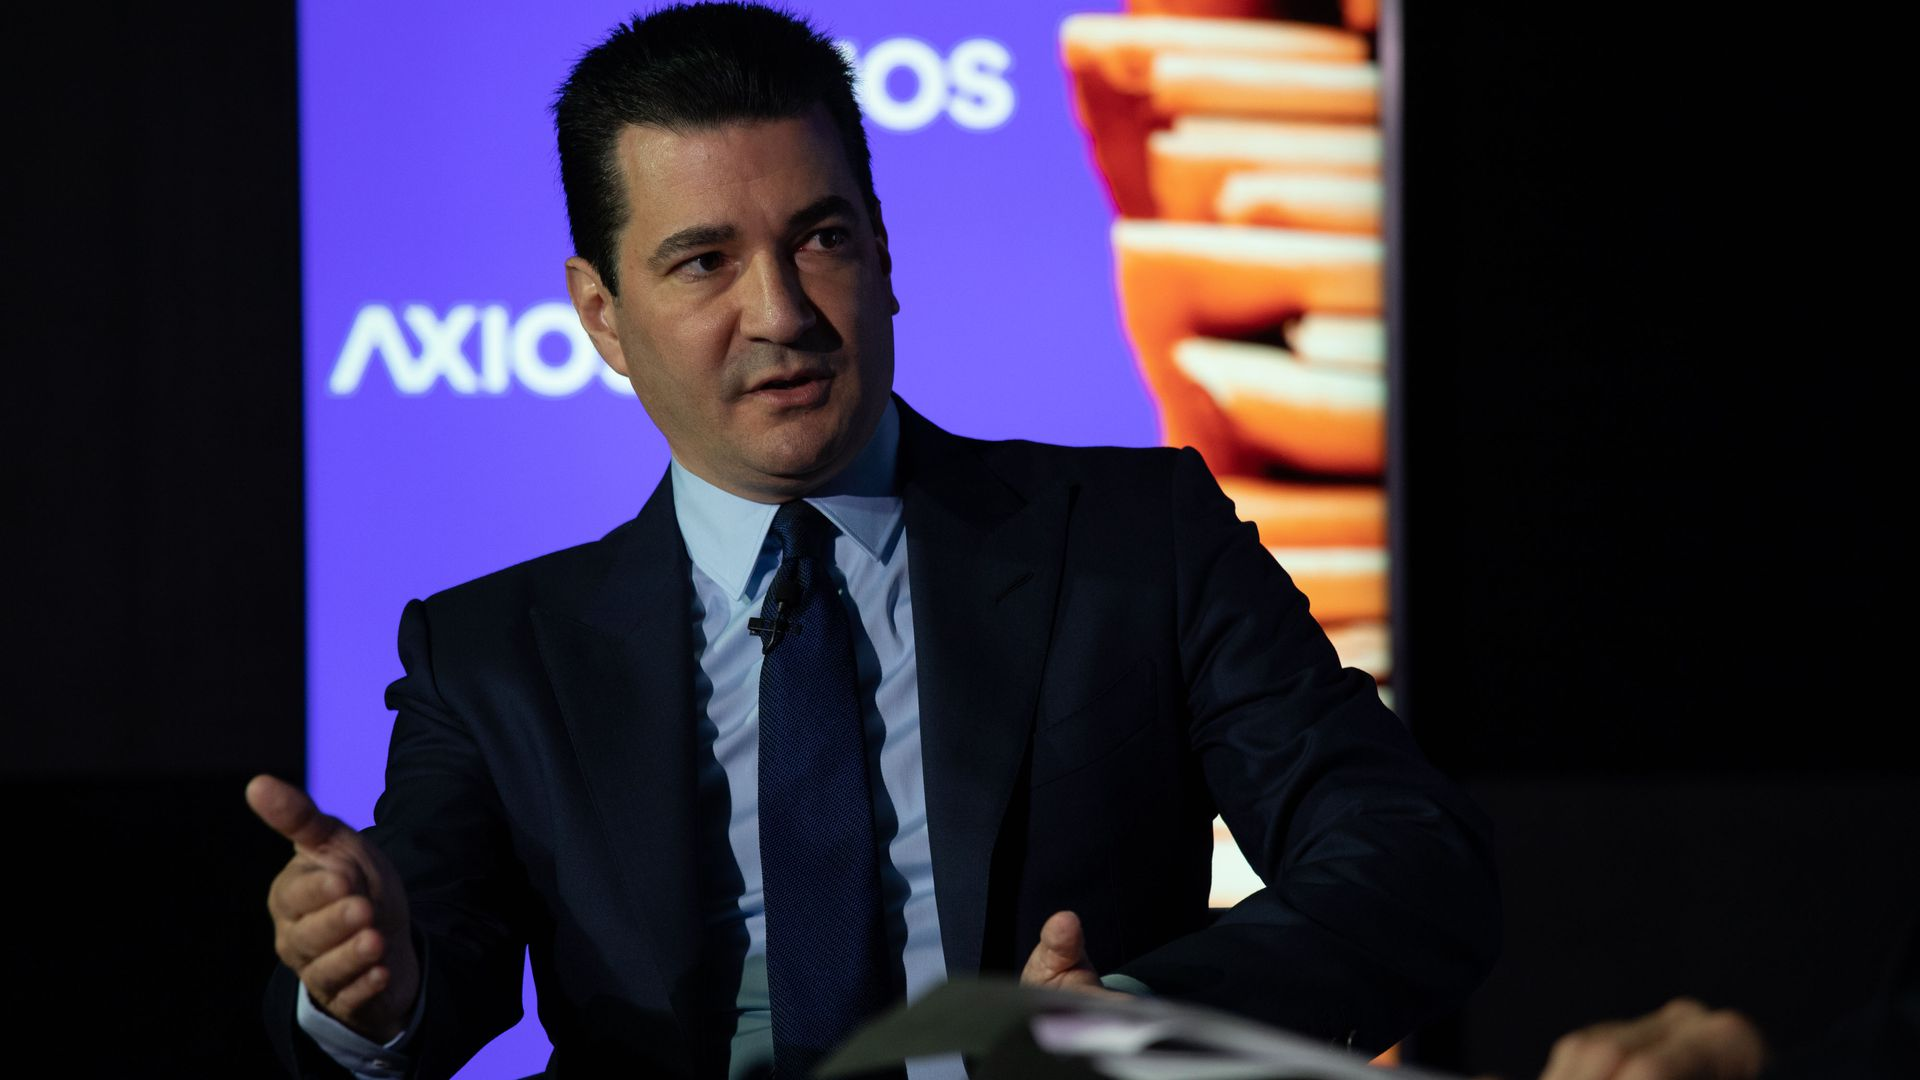 ff6f7e788502 FDA Commissioner Scott Gottlieb. Photo: Chuck Kennedy/Axios. The Food and  Drug Administration is considering a ban on the online sale of e-cigarettes  ...